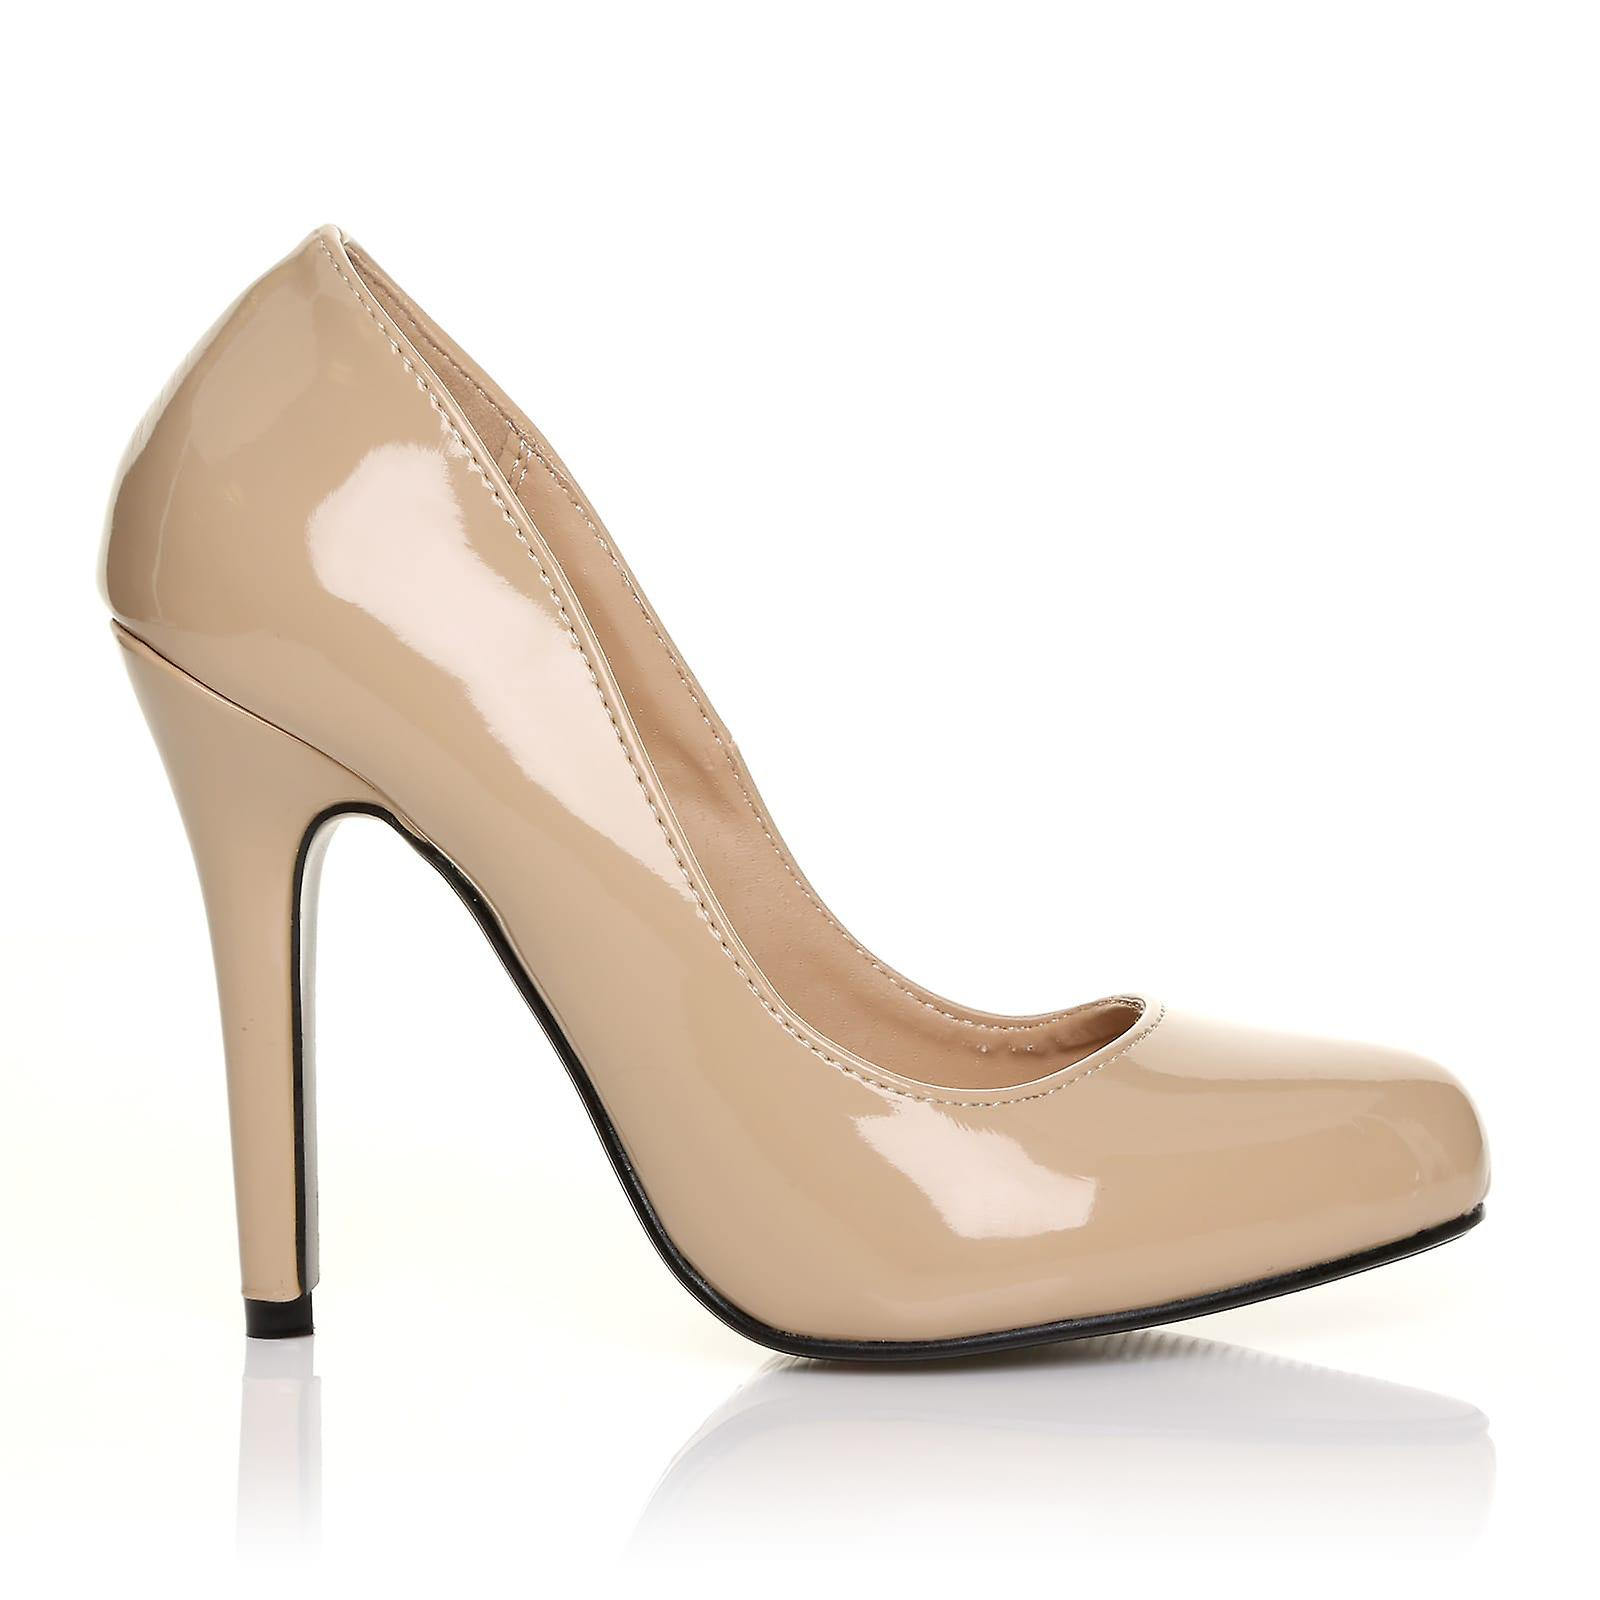 HILLARY Nude Patent Classic PU Leather Stilleto High Heel Classic Patent Court Shoes 95aae5